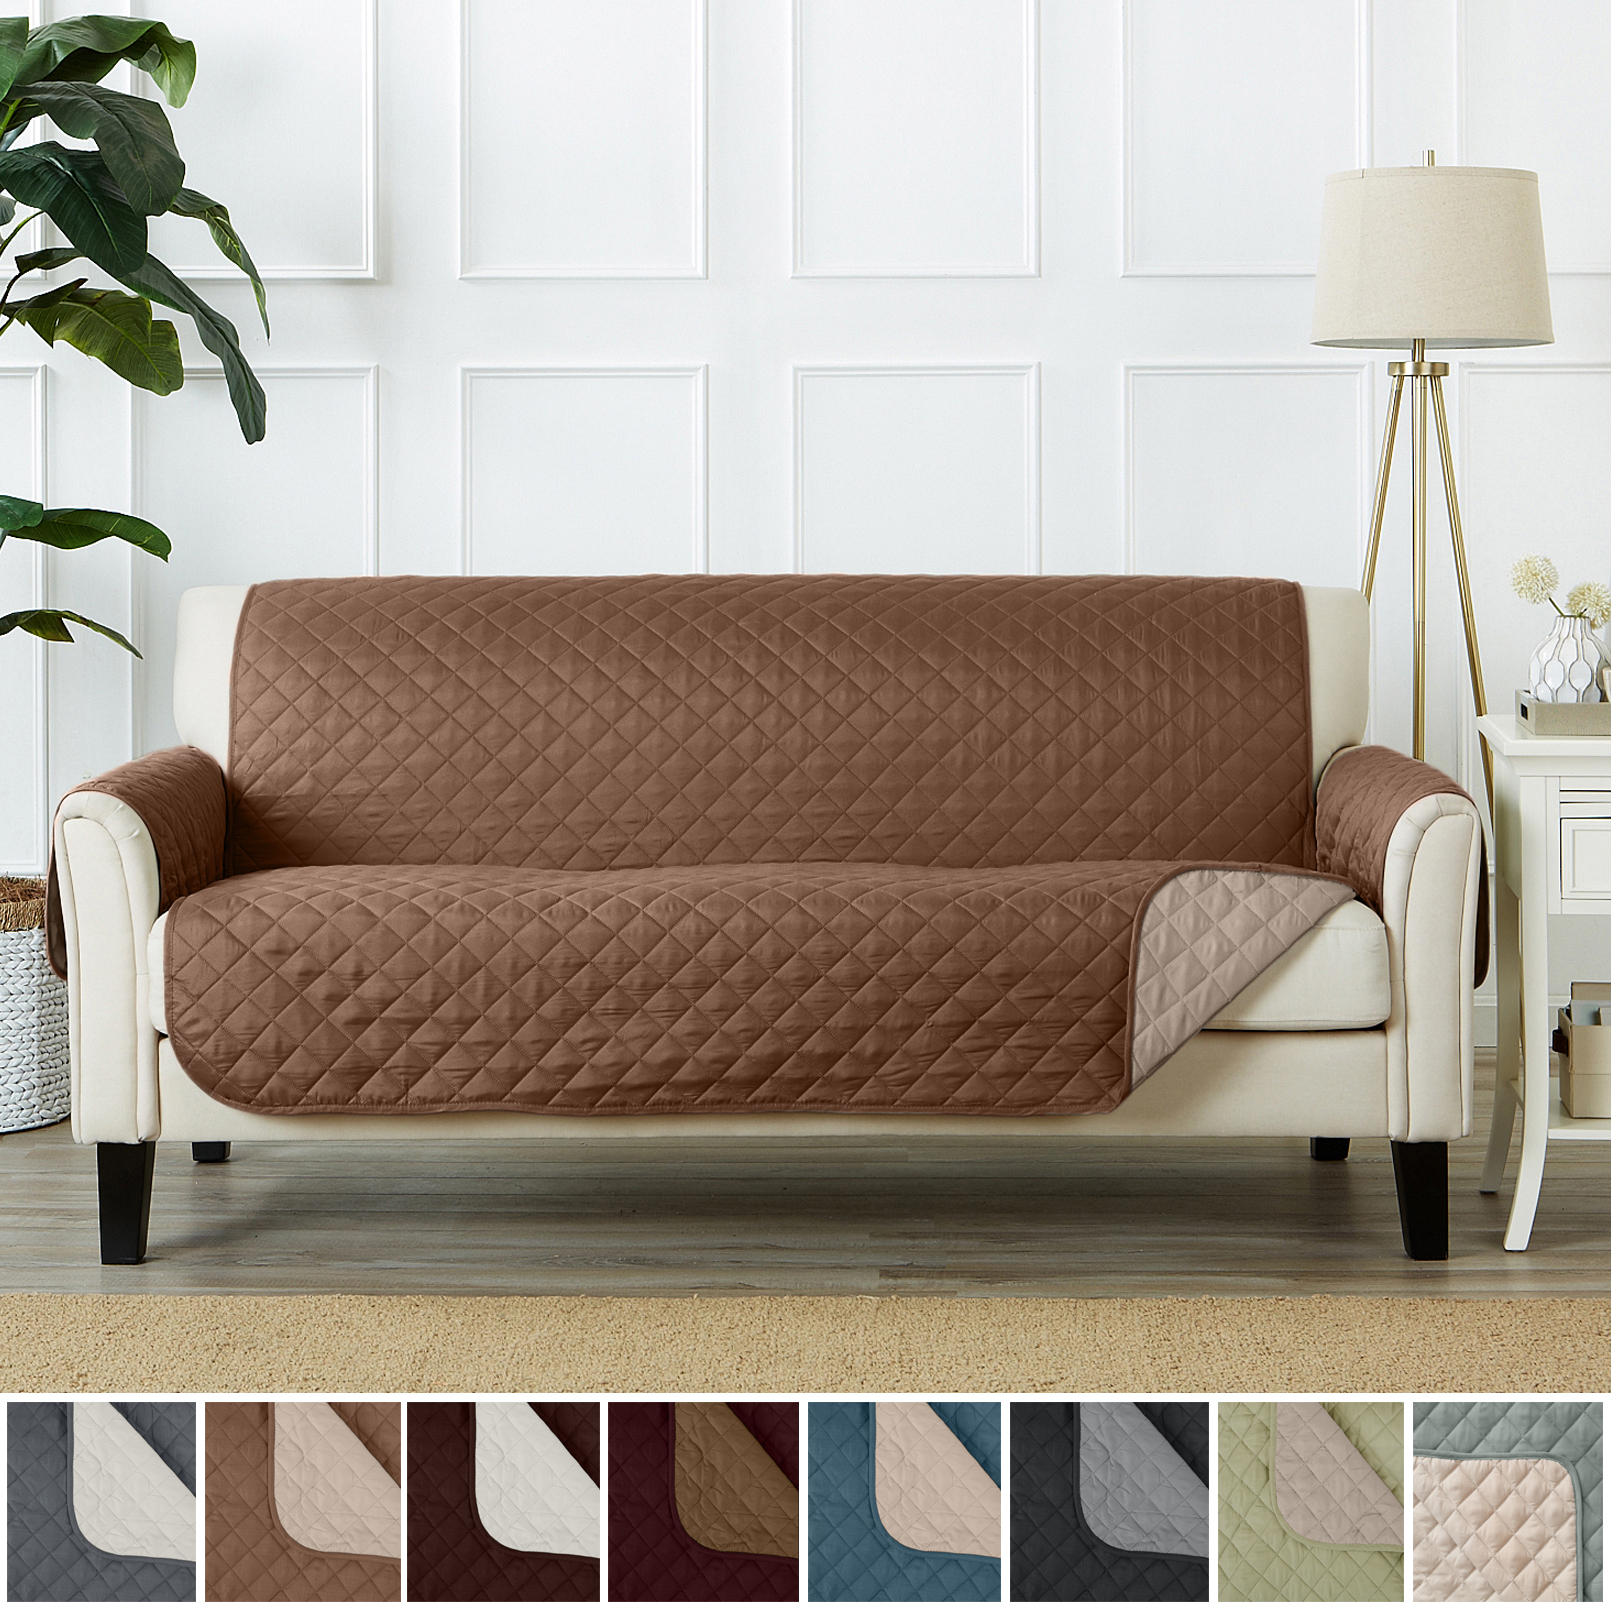 Reversible Furniture Protector by Home Fashion Designs